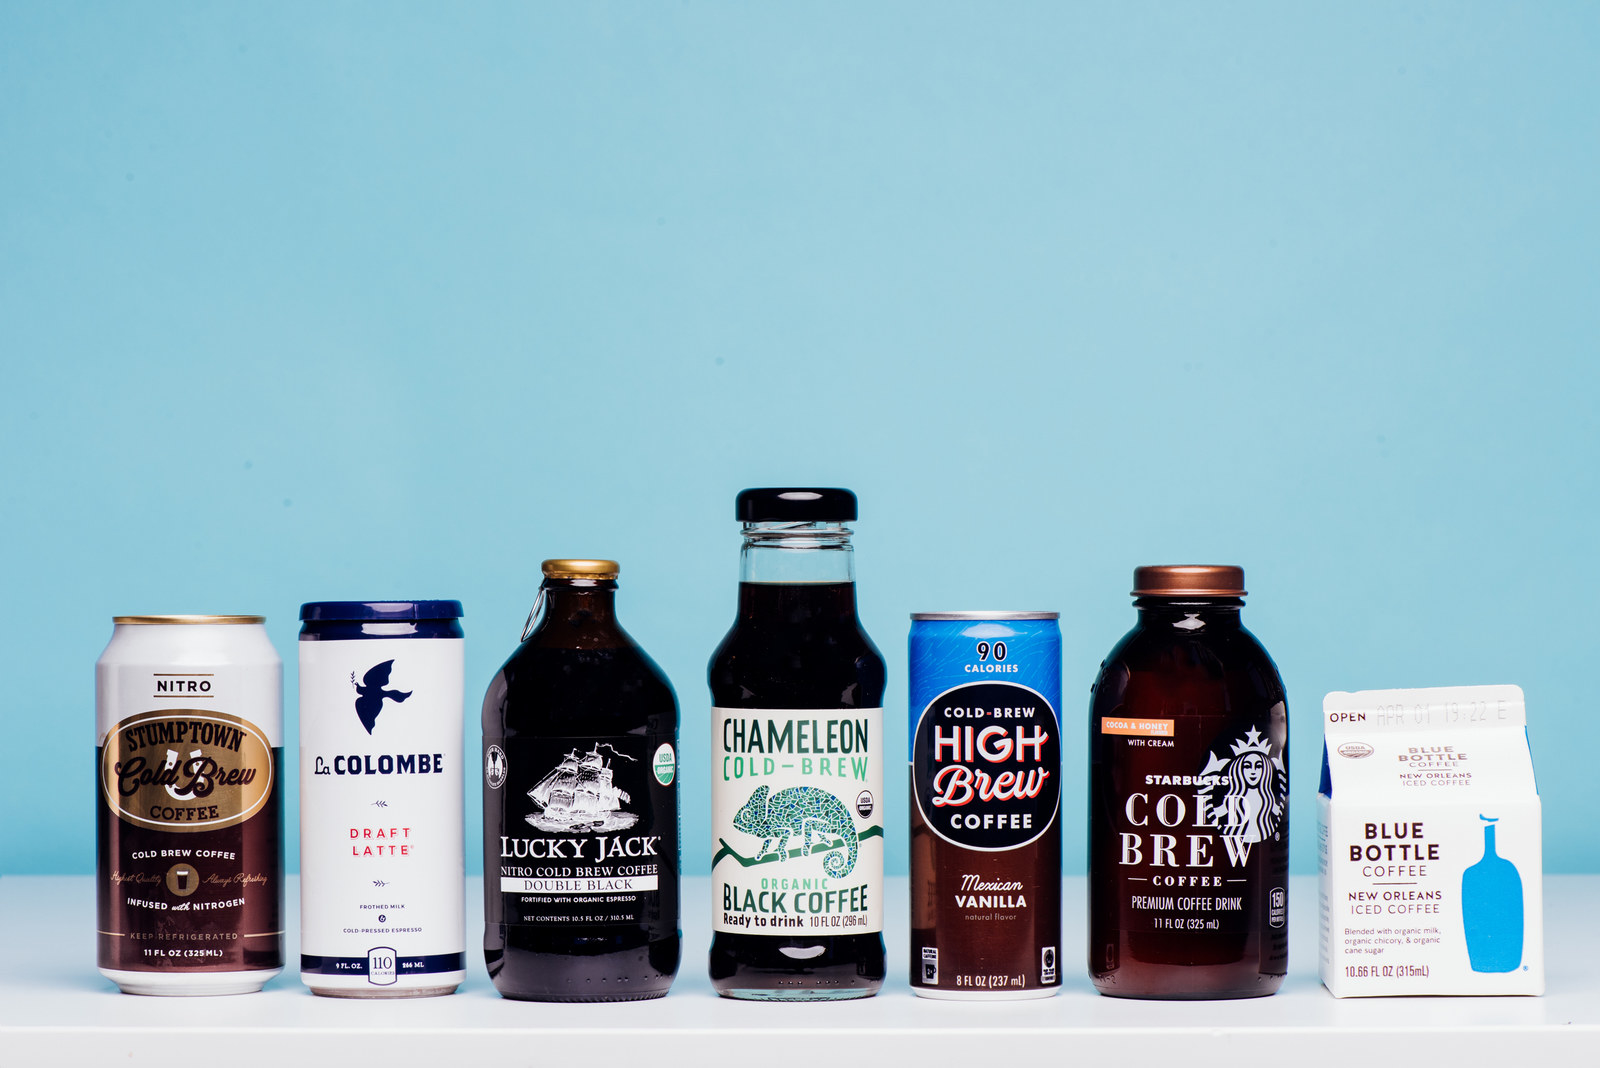 We Tried All Those Cold Brew Coffees You See At The Grocery Store